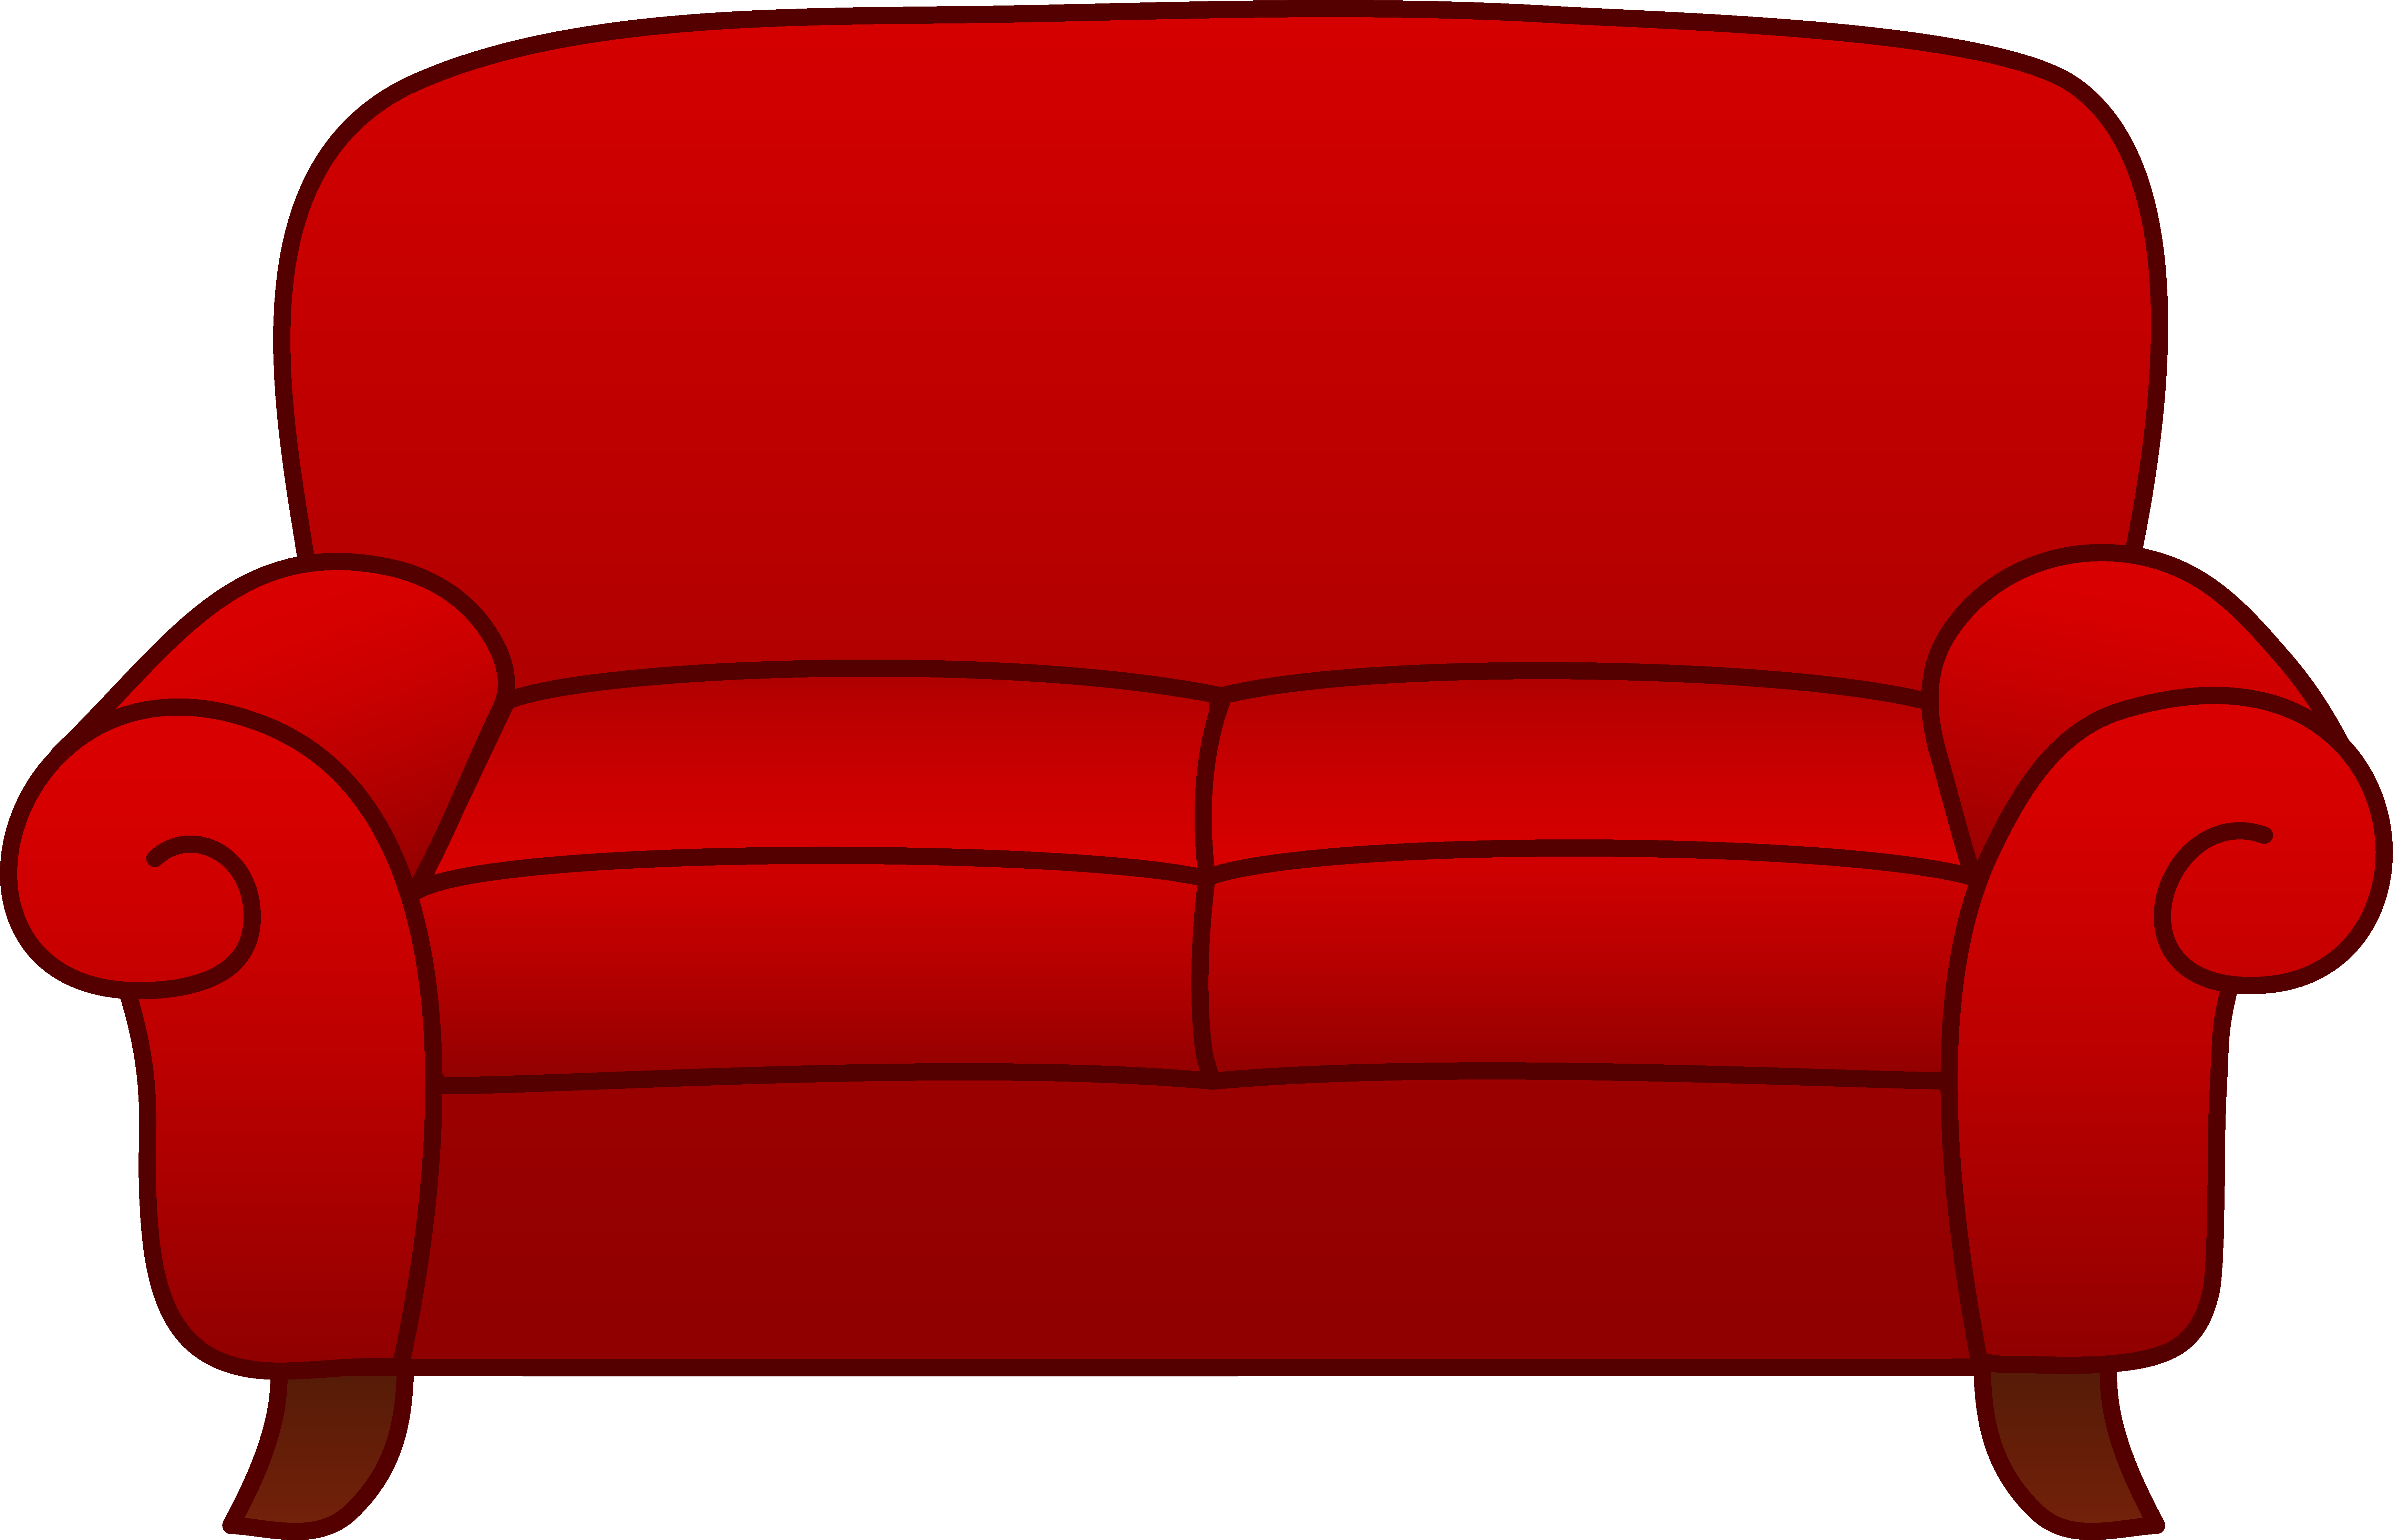 Cartoon couch png. Sofa cliparts bed clip